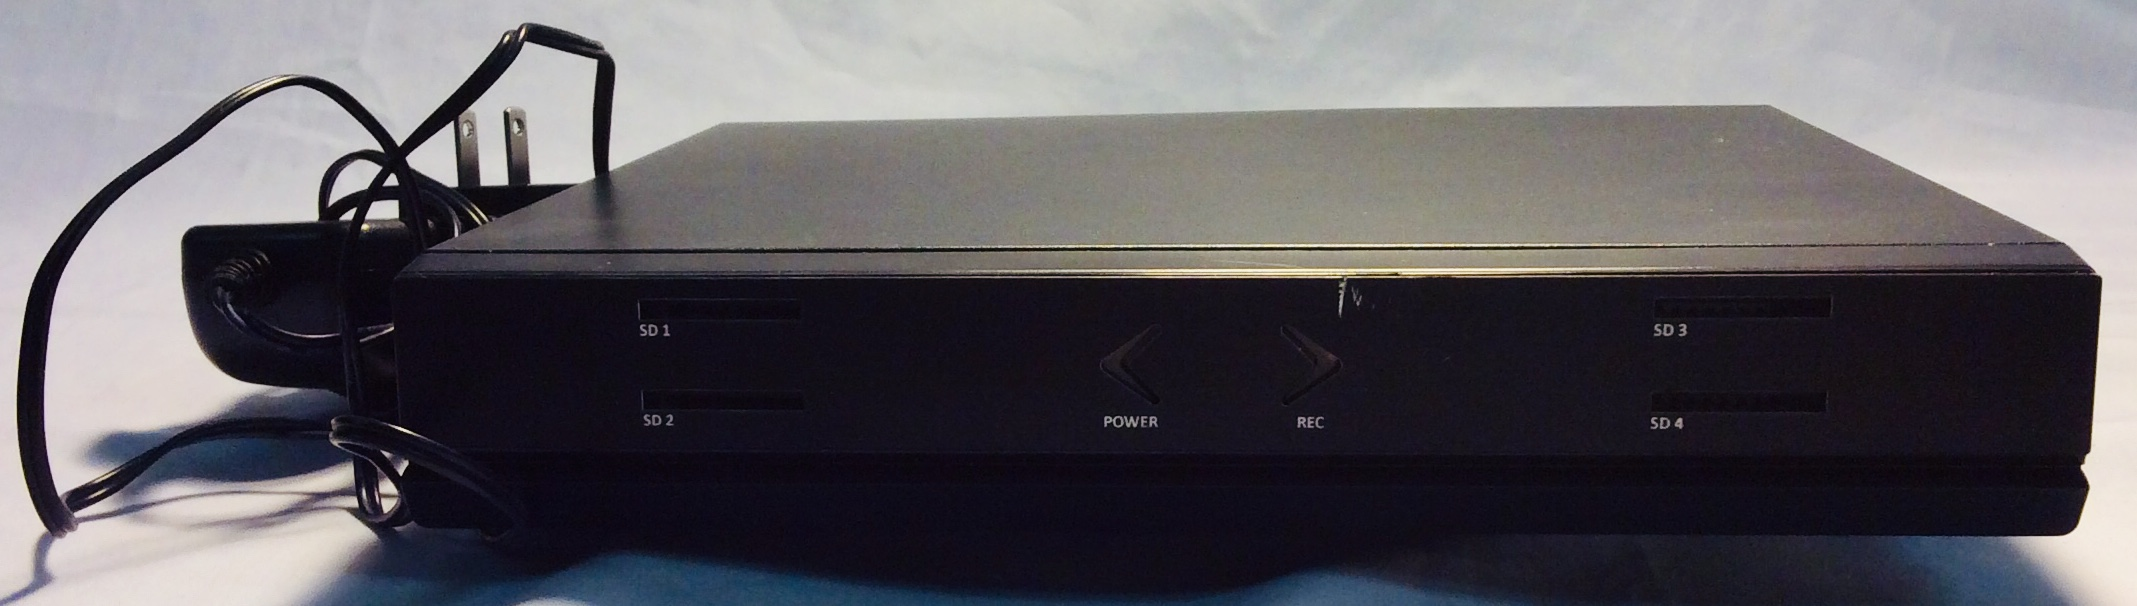 Digital video recorder box, 16 video